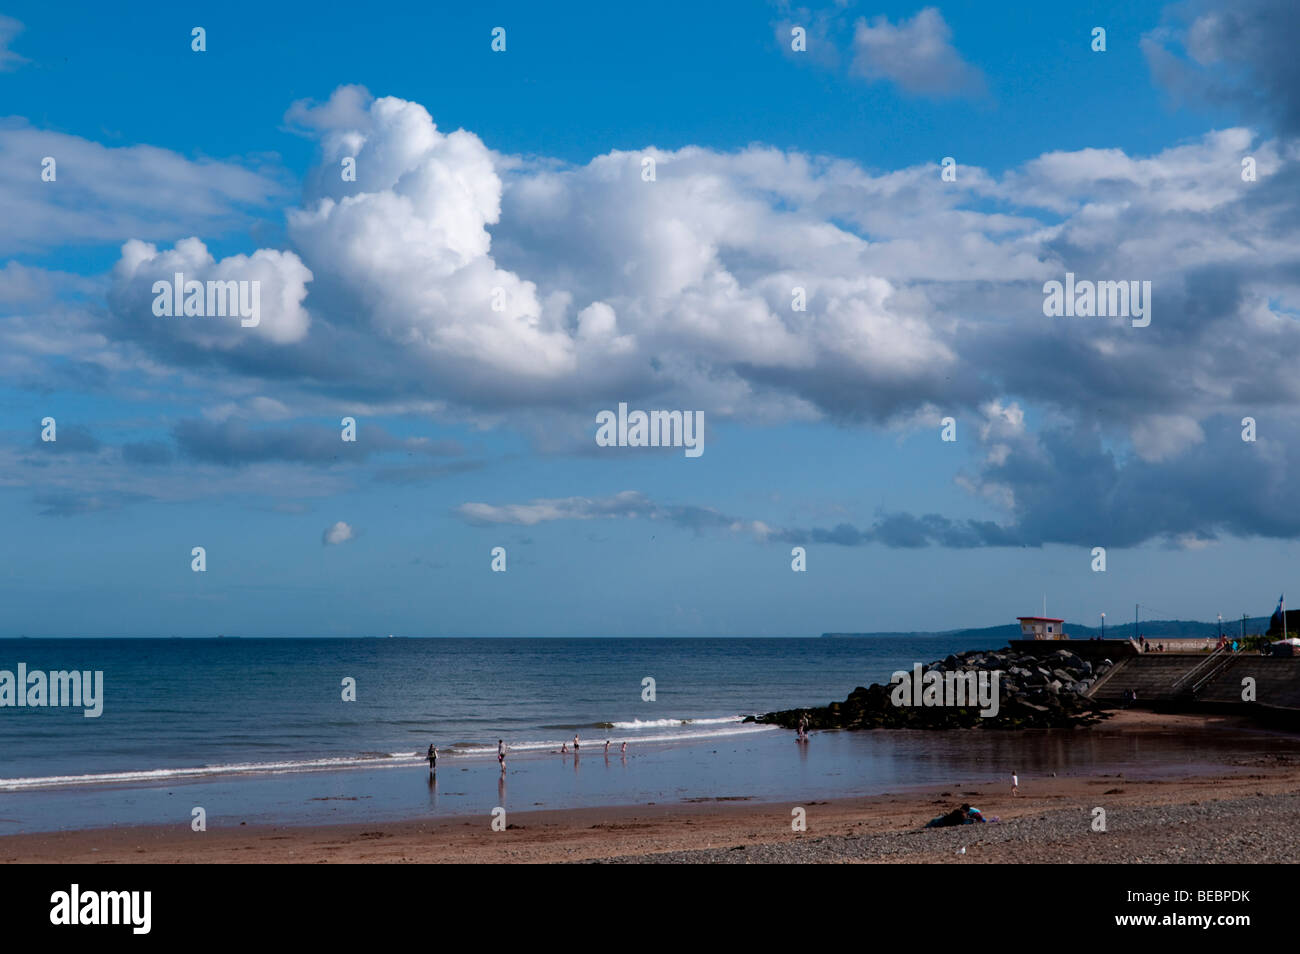 europe, uk, england, devon, Dawlish - Stock Image